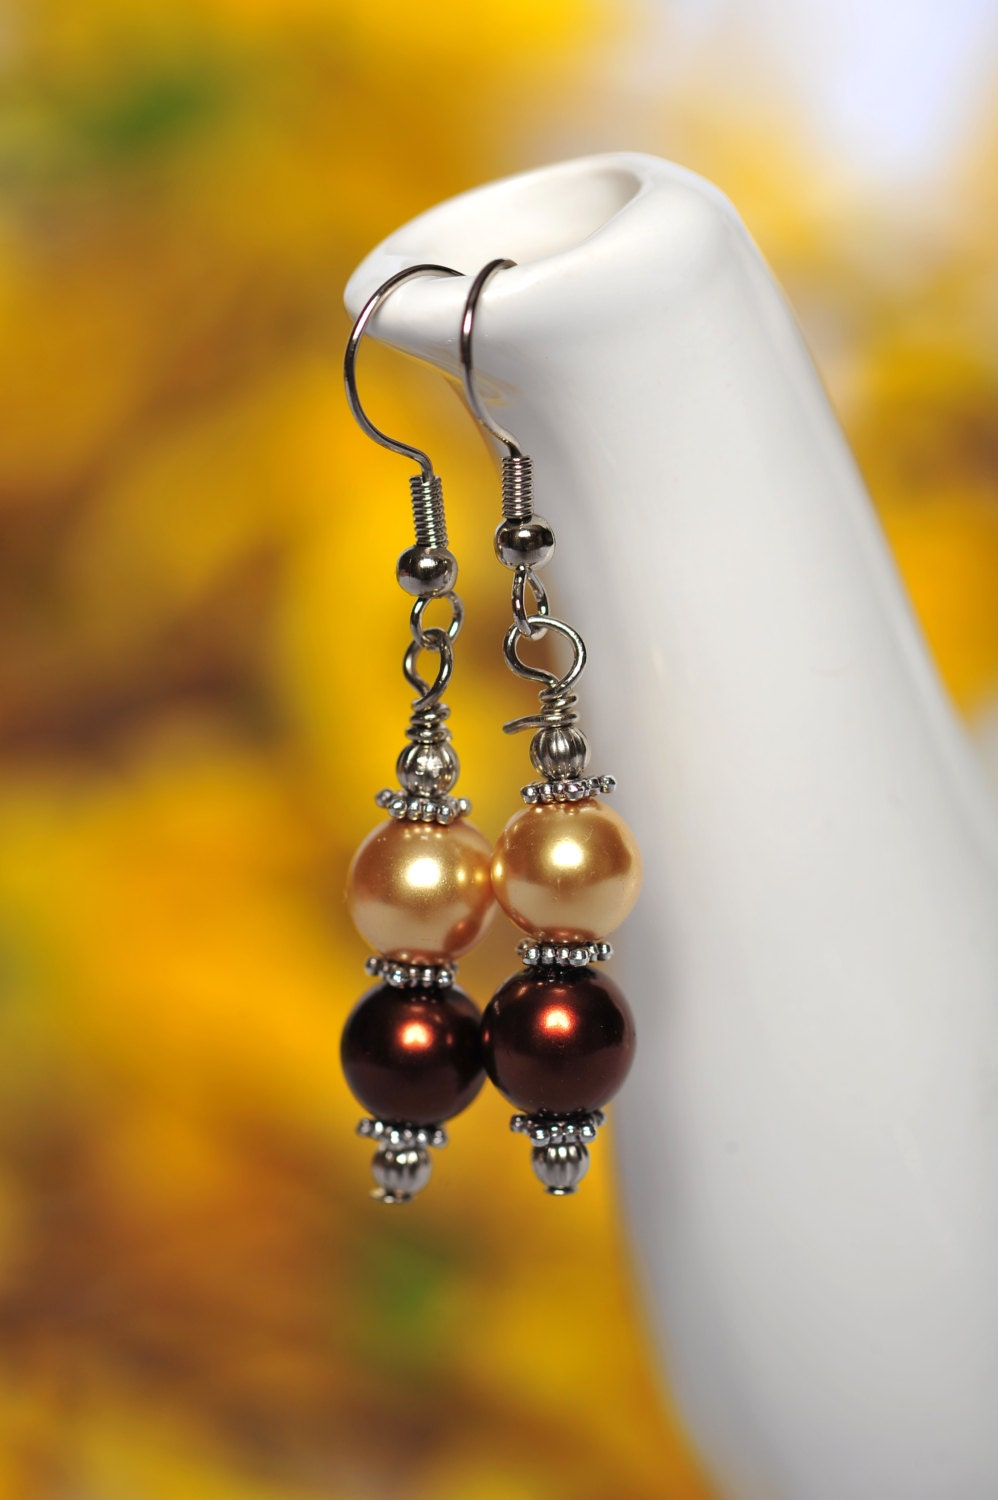 FREE SHIPPING - Swarovski Pearl Earrings - Dark Brown and Gold Pearls - Bridal Gifts - CreativeDesignsByEJ